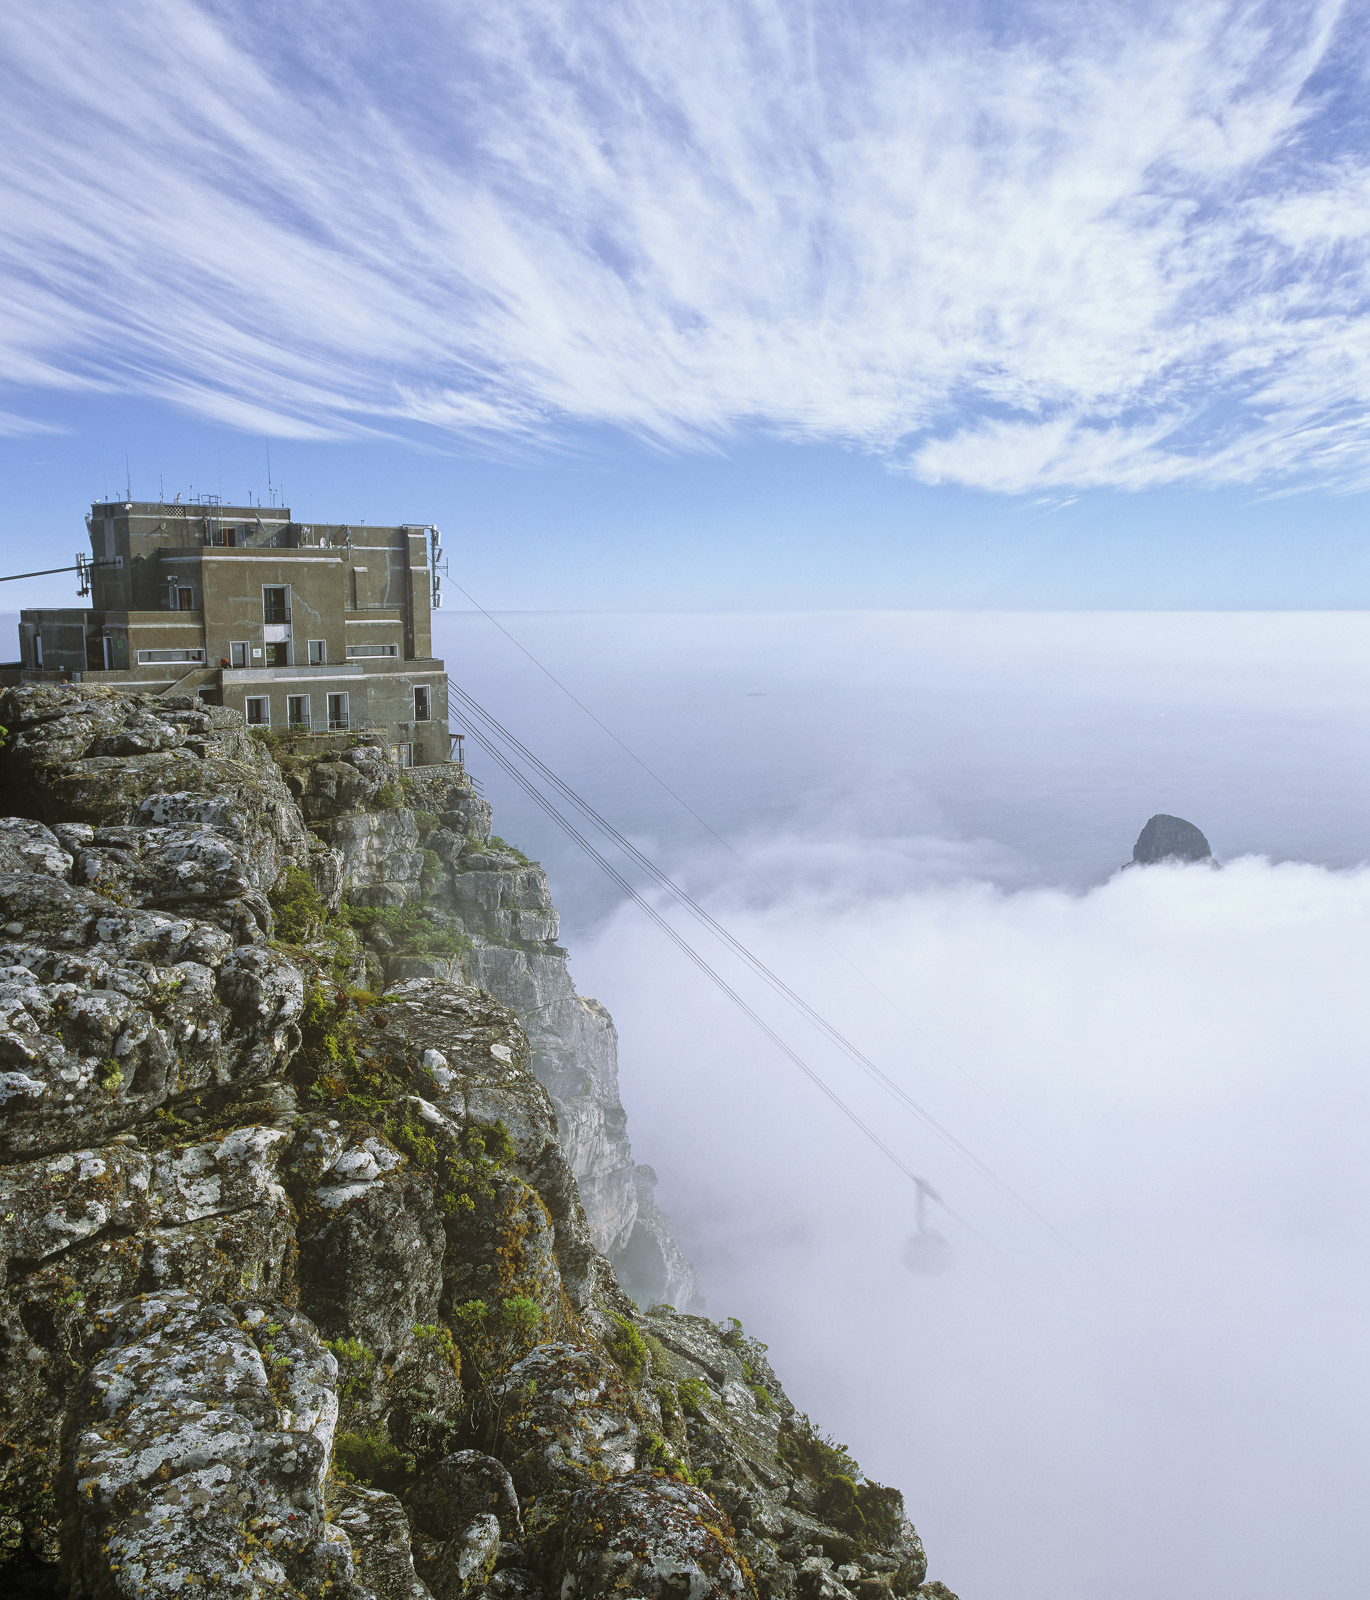 Table Top, Table Top Mountain, Capetown, South Africa, cloud, blanket, cirrus, sky, Lions Head, vanish, cable car, desce, photo